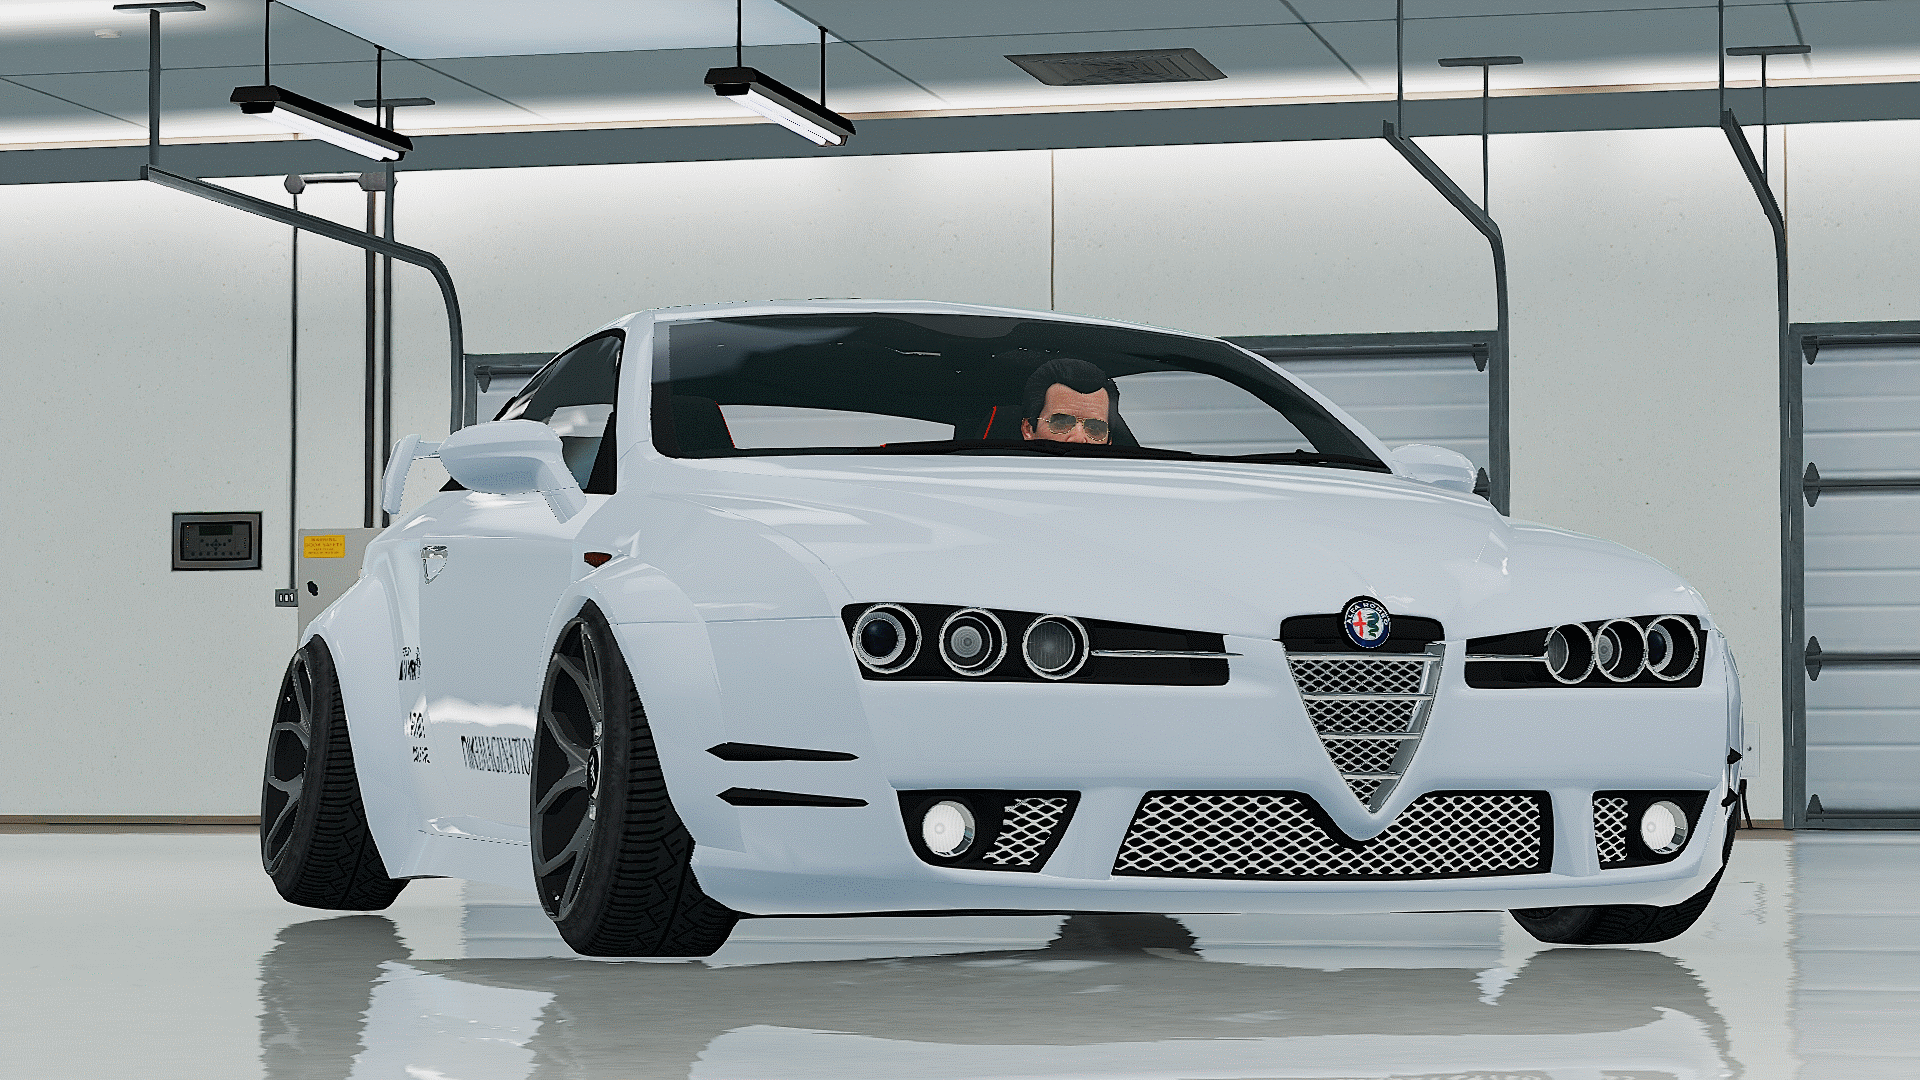 Alfa Romeo Brera Modified [NiKIMAGINATION]  GTA5Mods.com